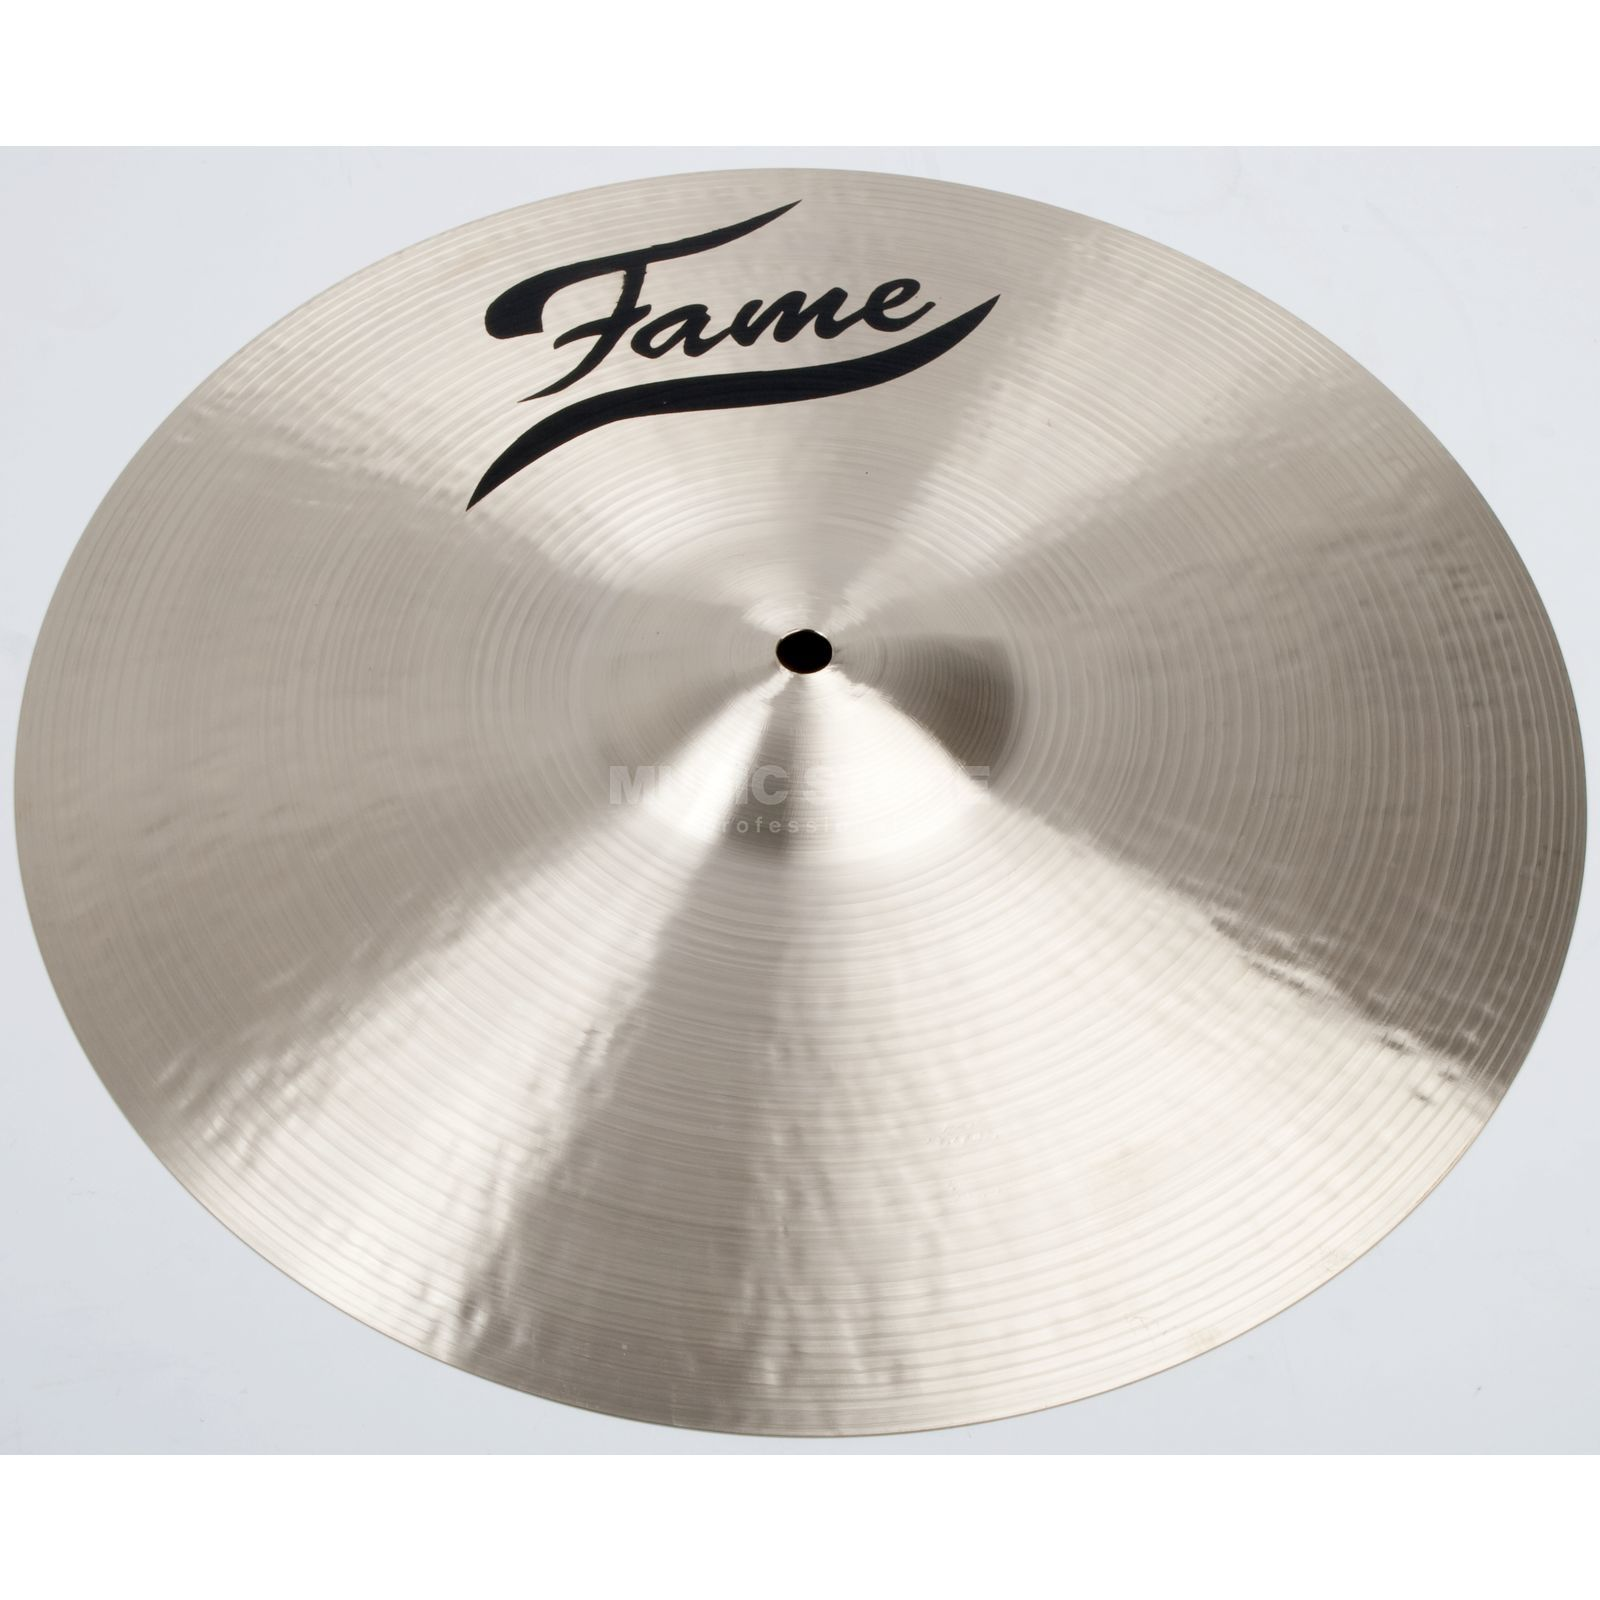 "Fame Masters B20 Heavy Crash 16"", Natural Finish Zdjęcie produktu"